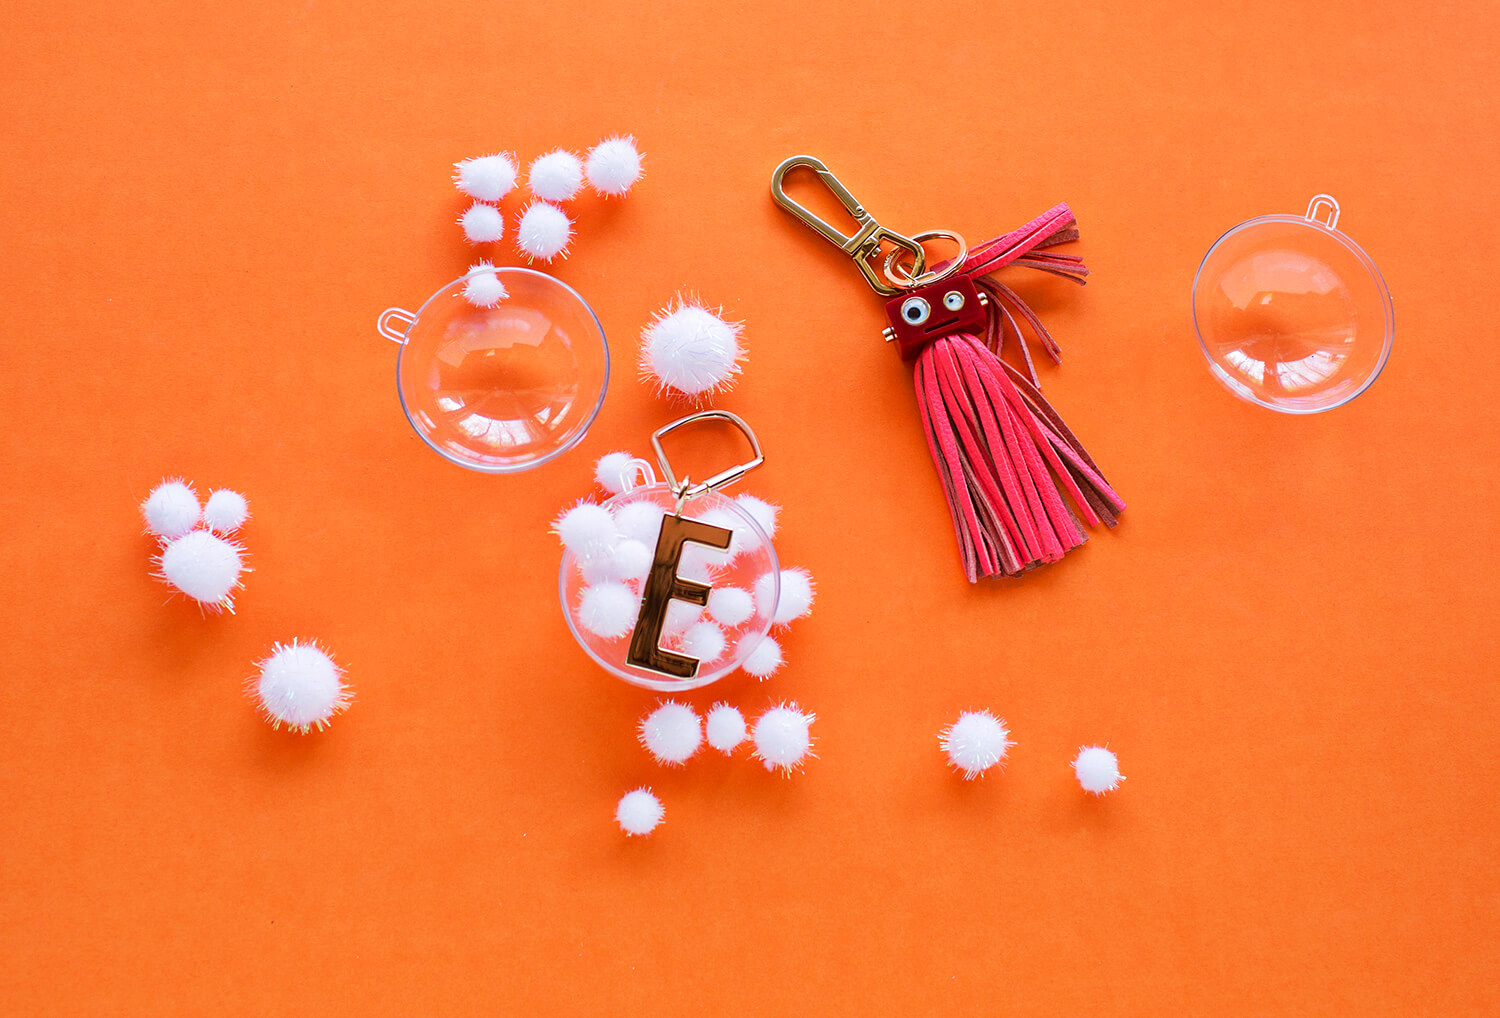 Personalized ornament DIY